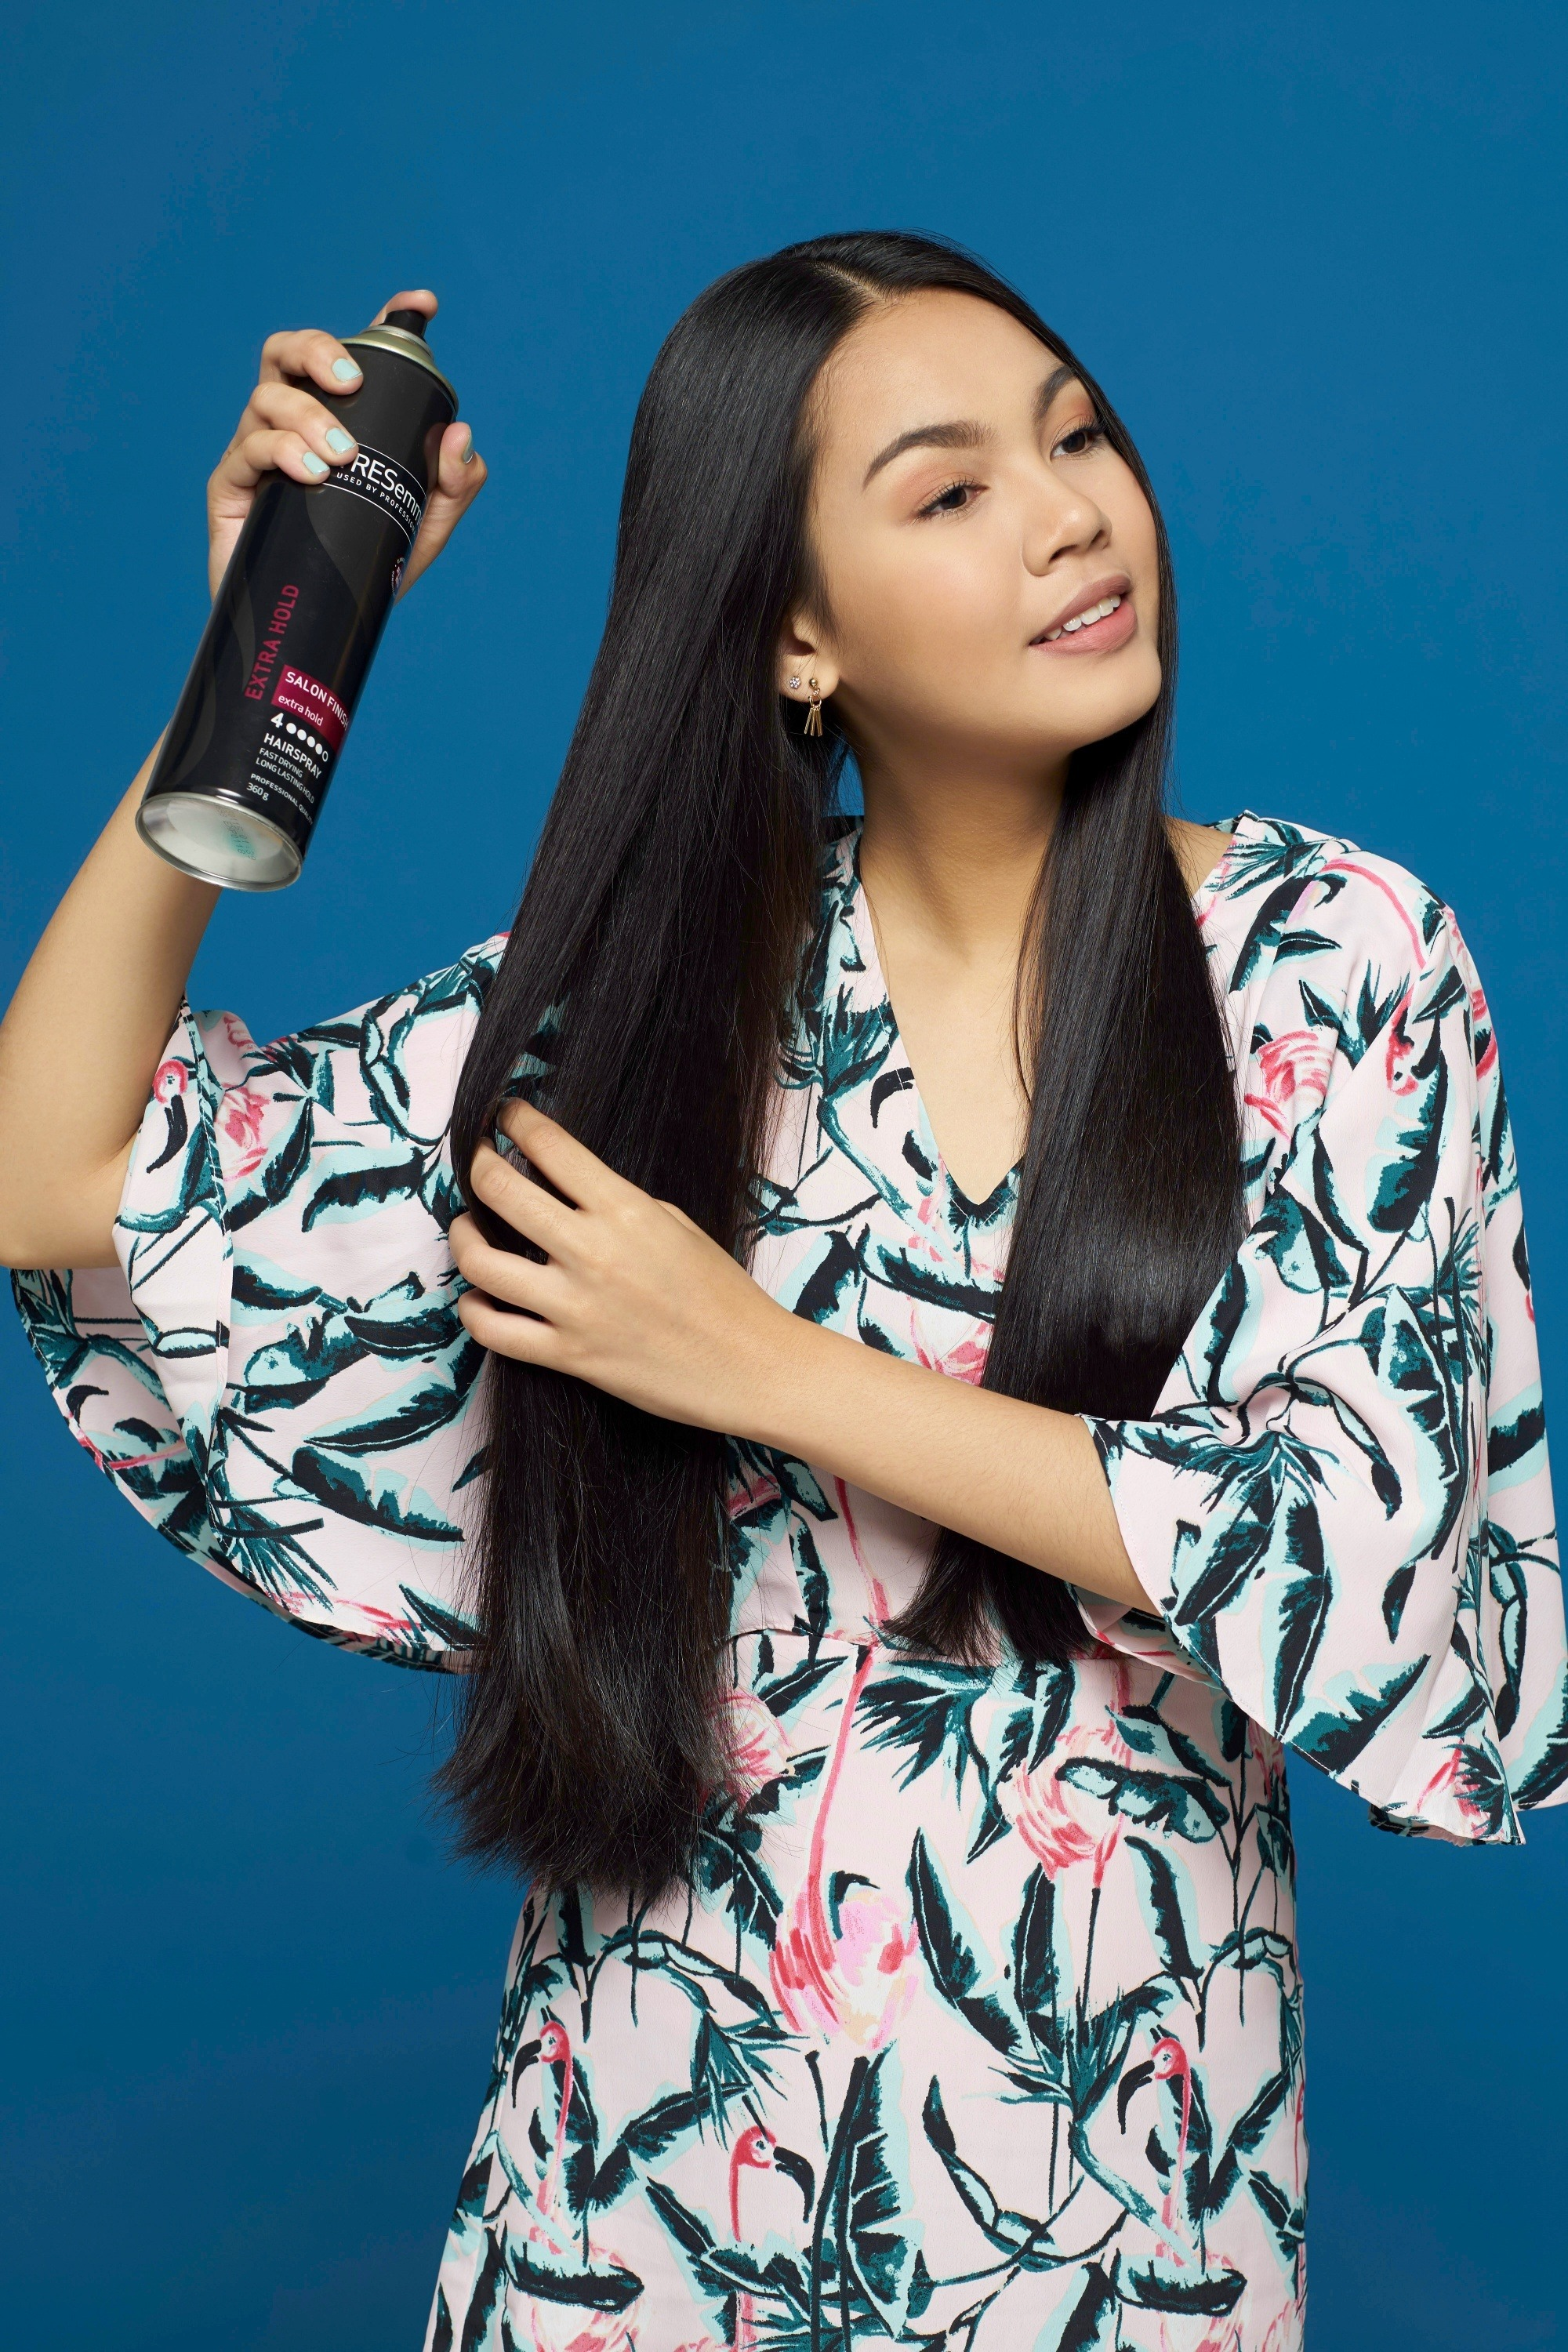 Hair spray guide: Asian woman spraying on her long black hair